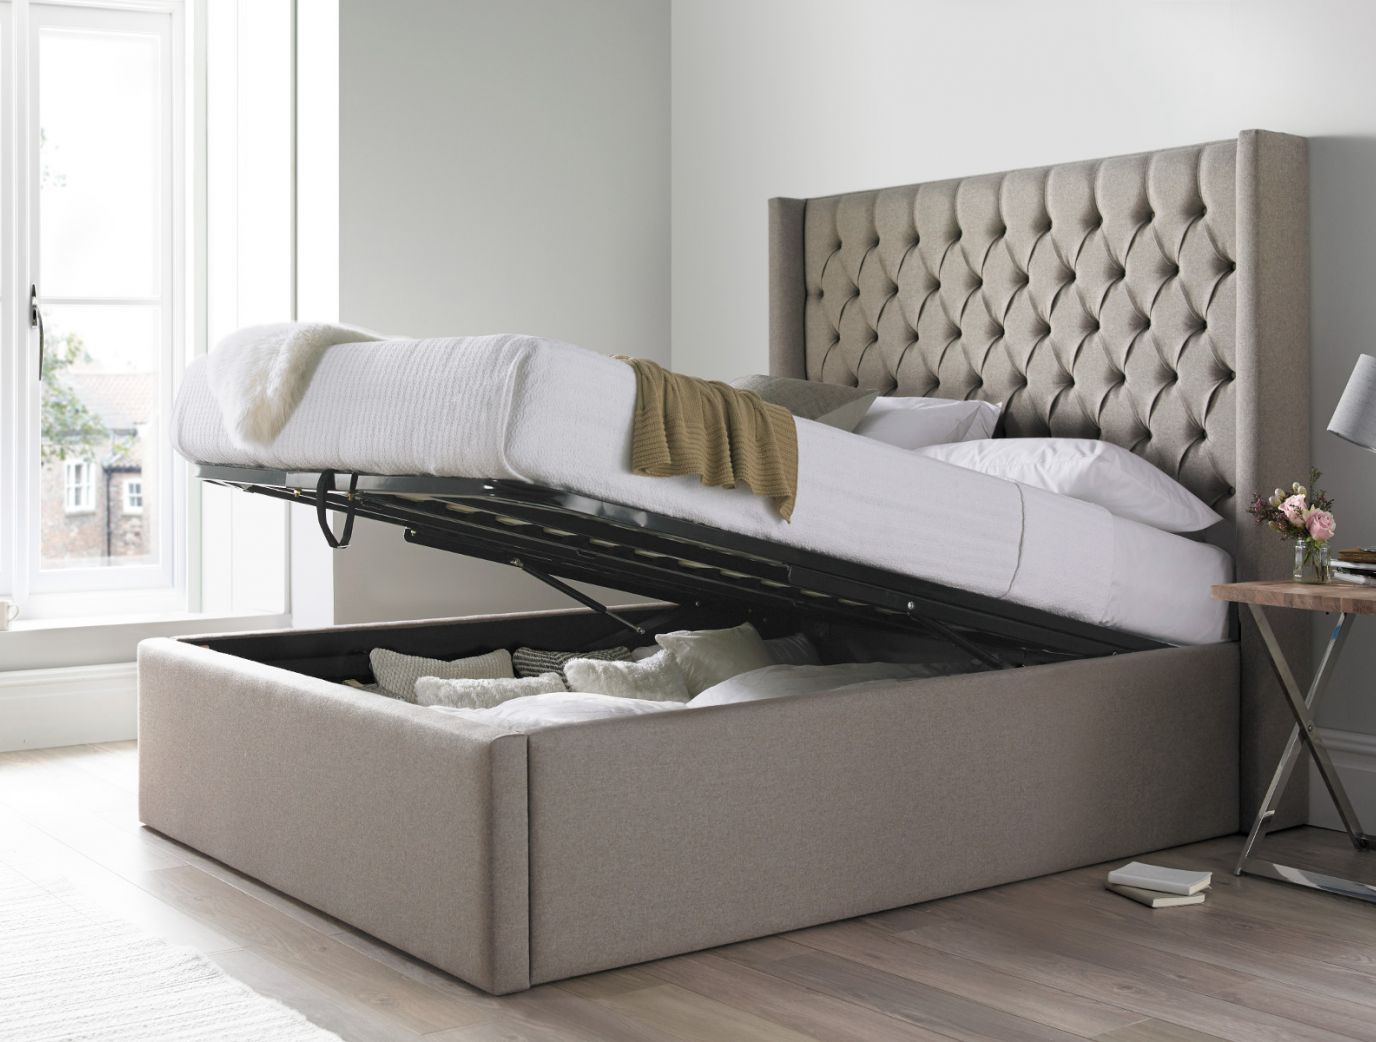 Islington Upholstered Ottoman Bed Frame Ottoman Storage Bed Bed